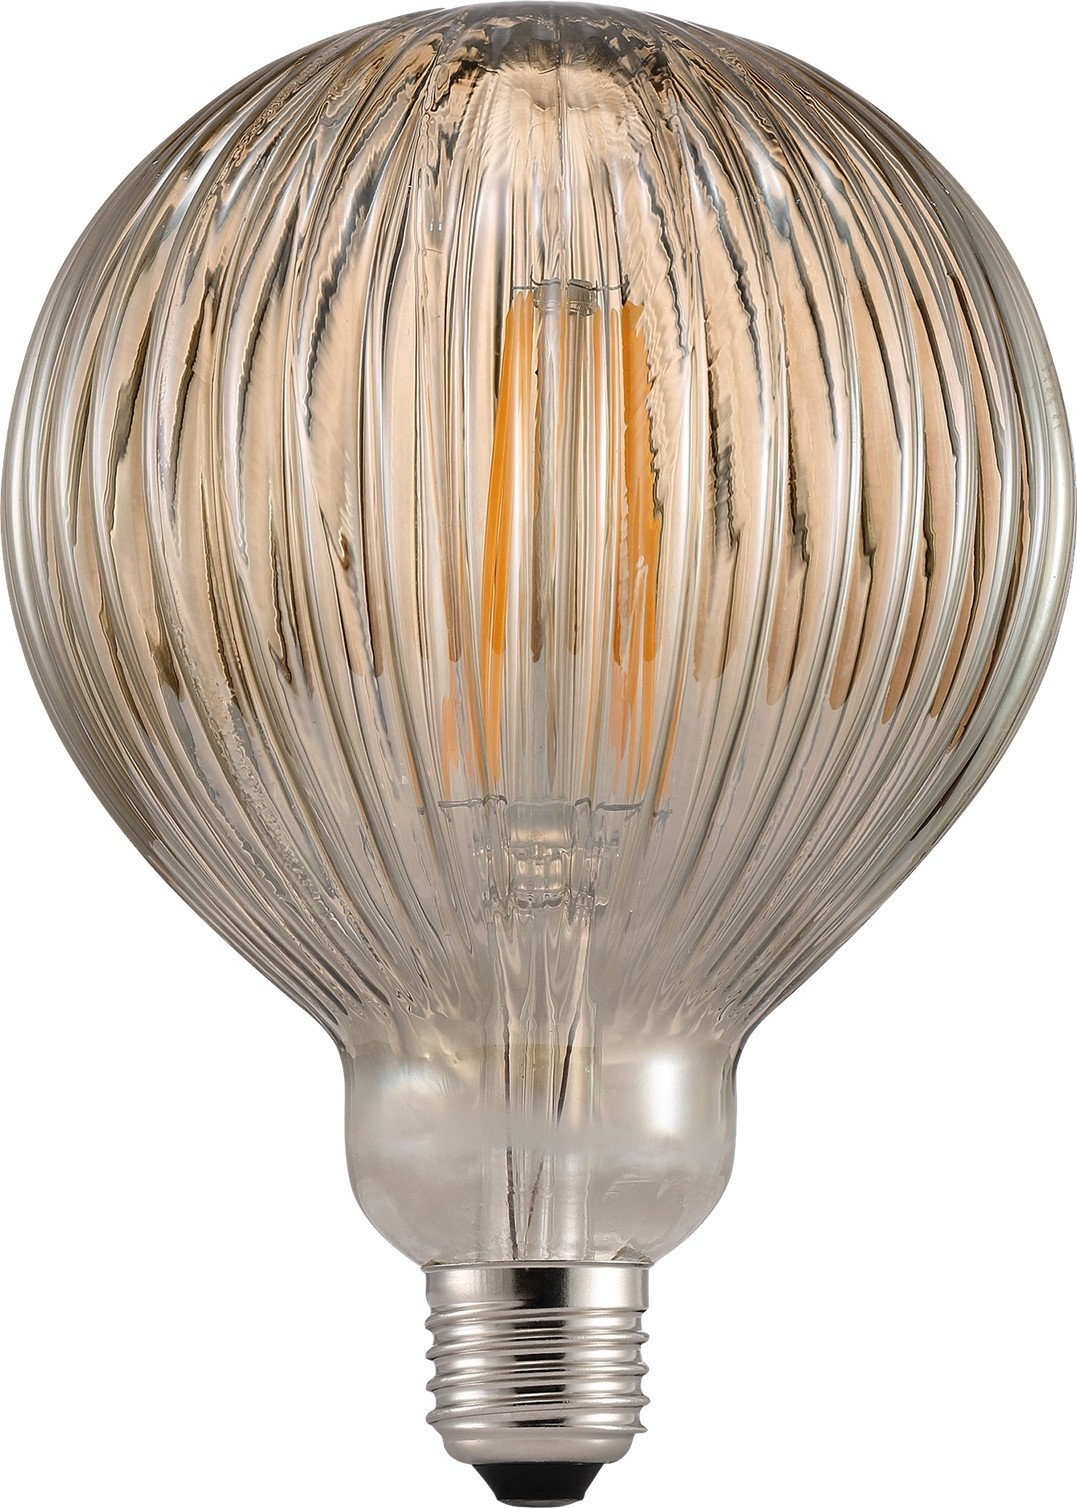 E27 Avra Stripes 2W Smoke Light bulbs, Nordlux